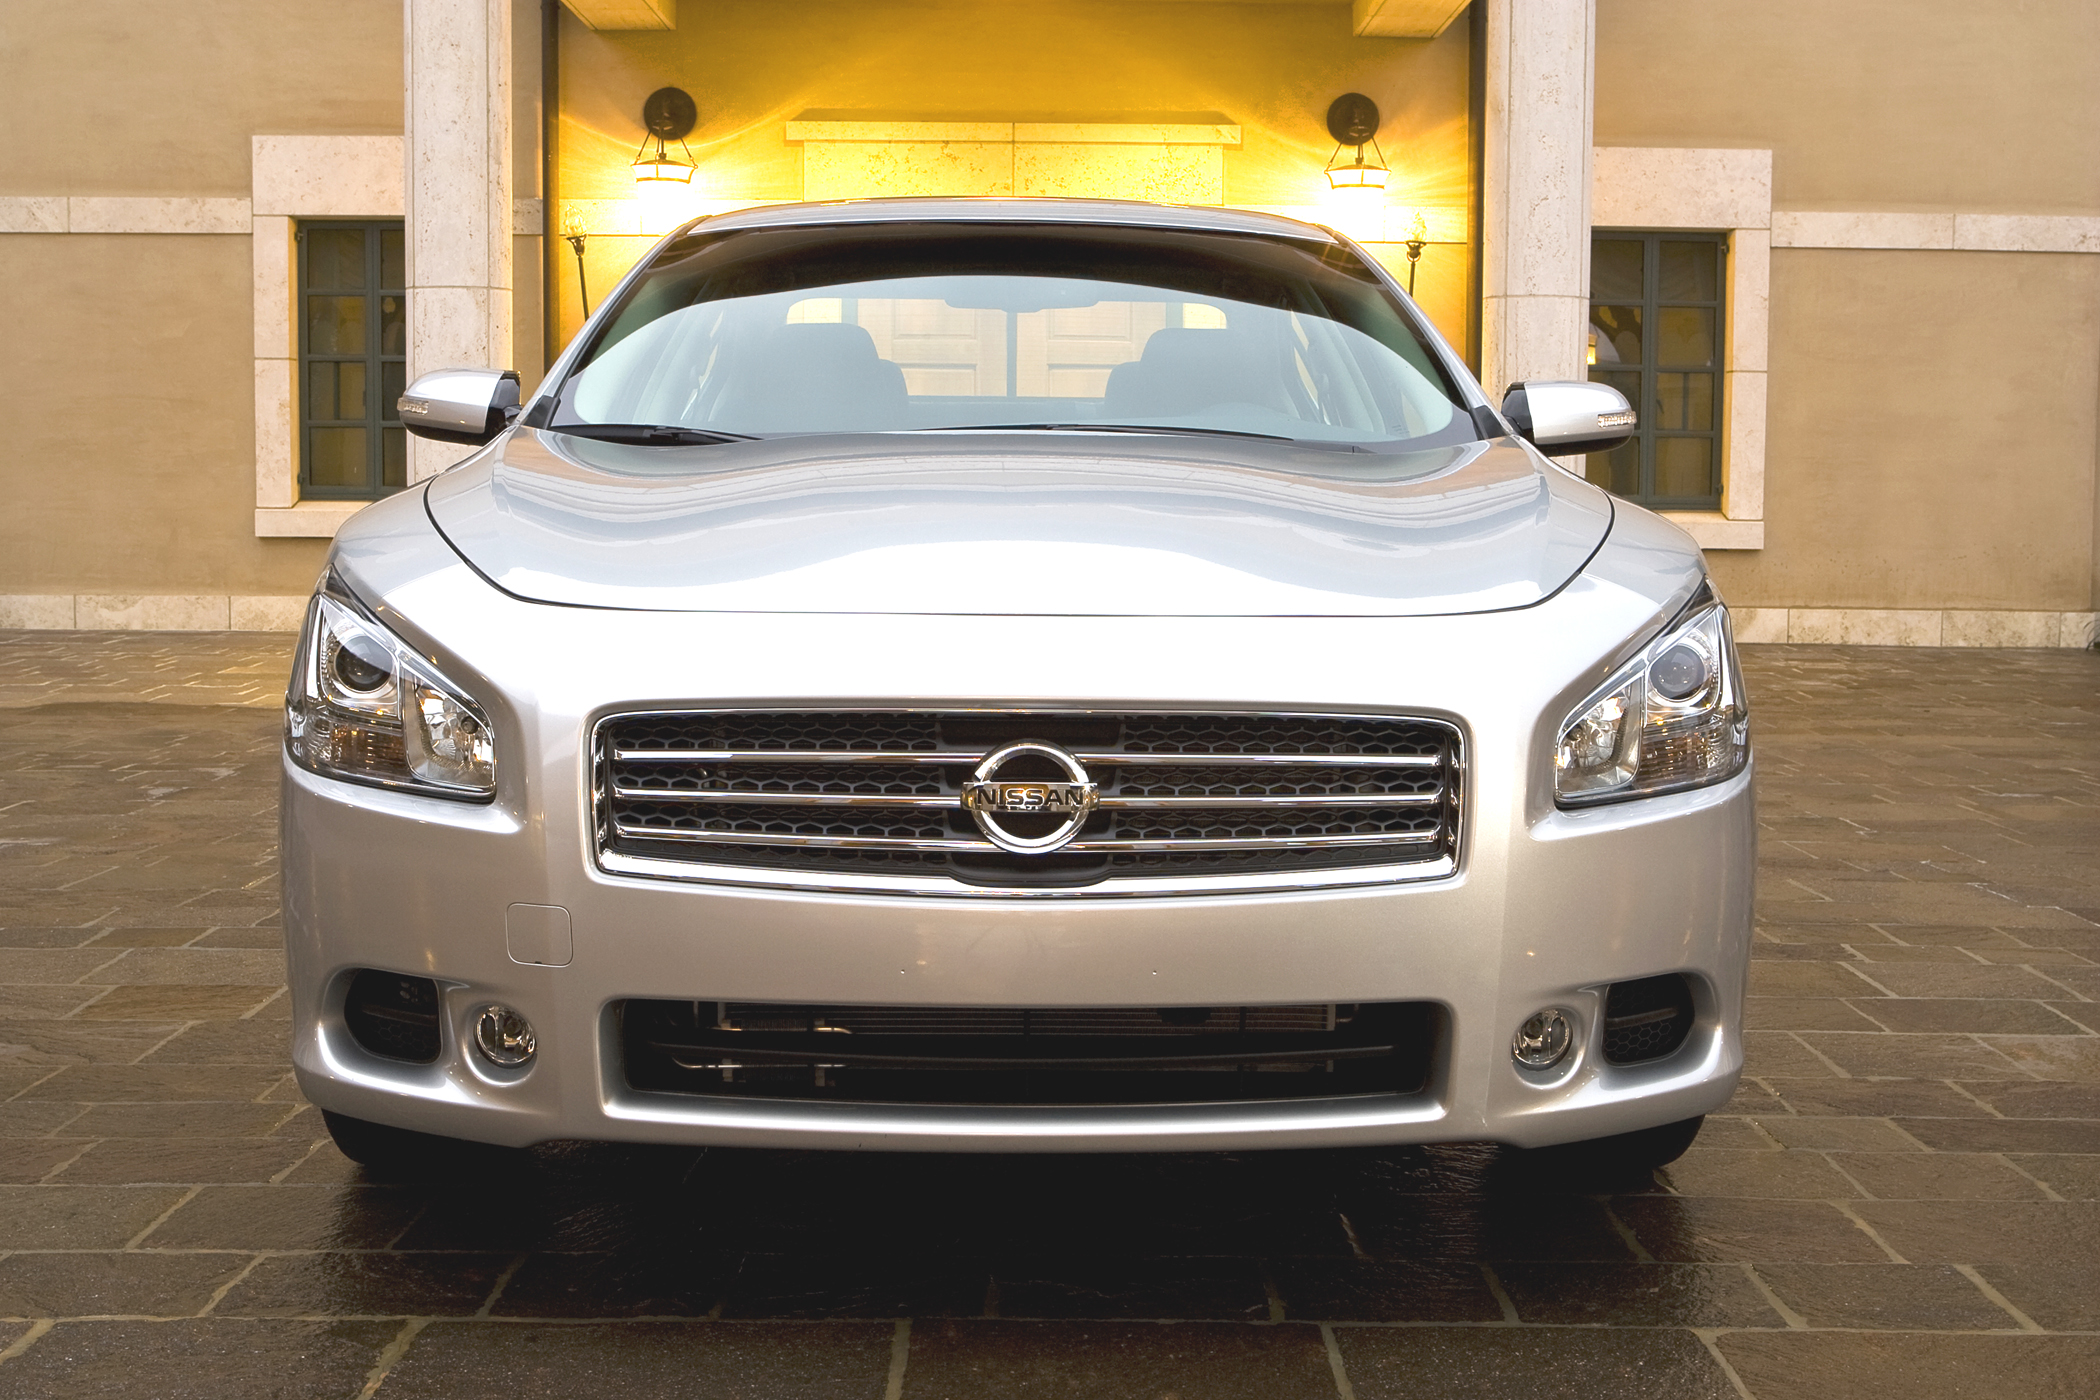 2009 Nissan Maxima may be bucking with the entry luxury